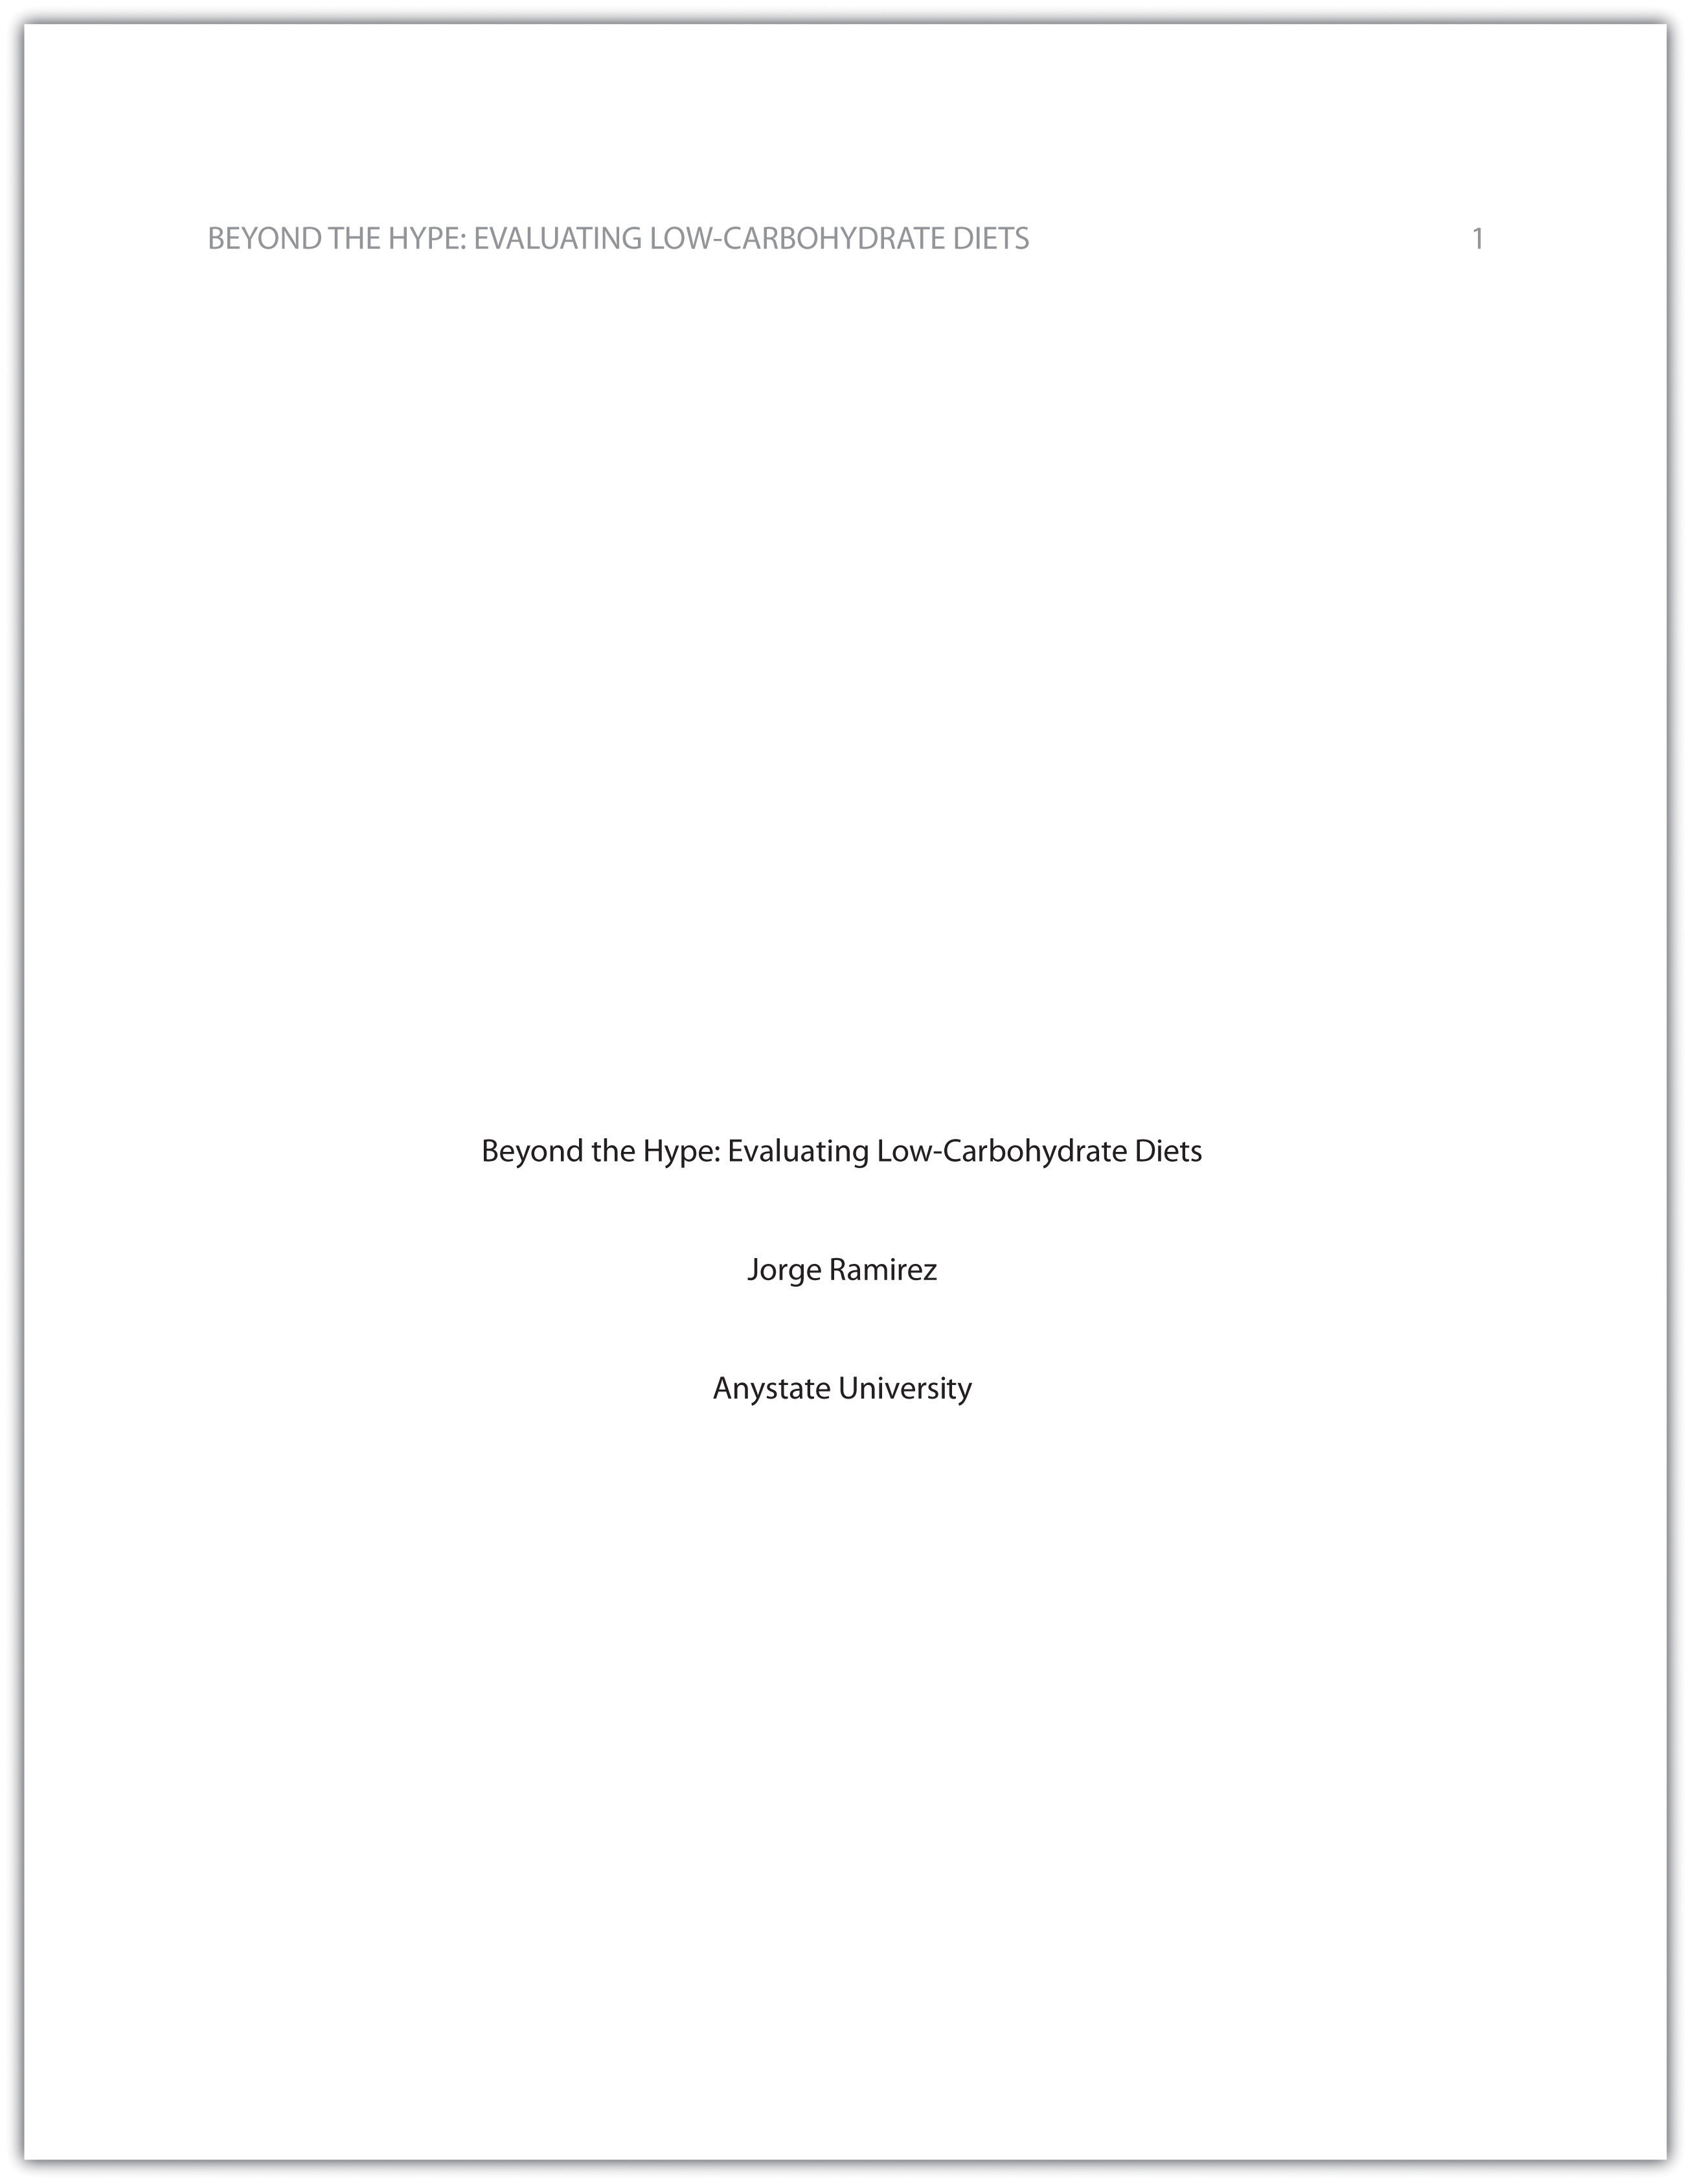 004 Apa Essay Cover Page Example Incredible Correct Title Front Research Full